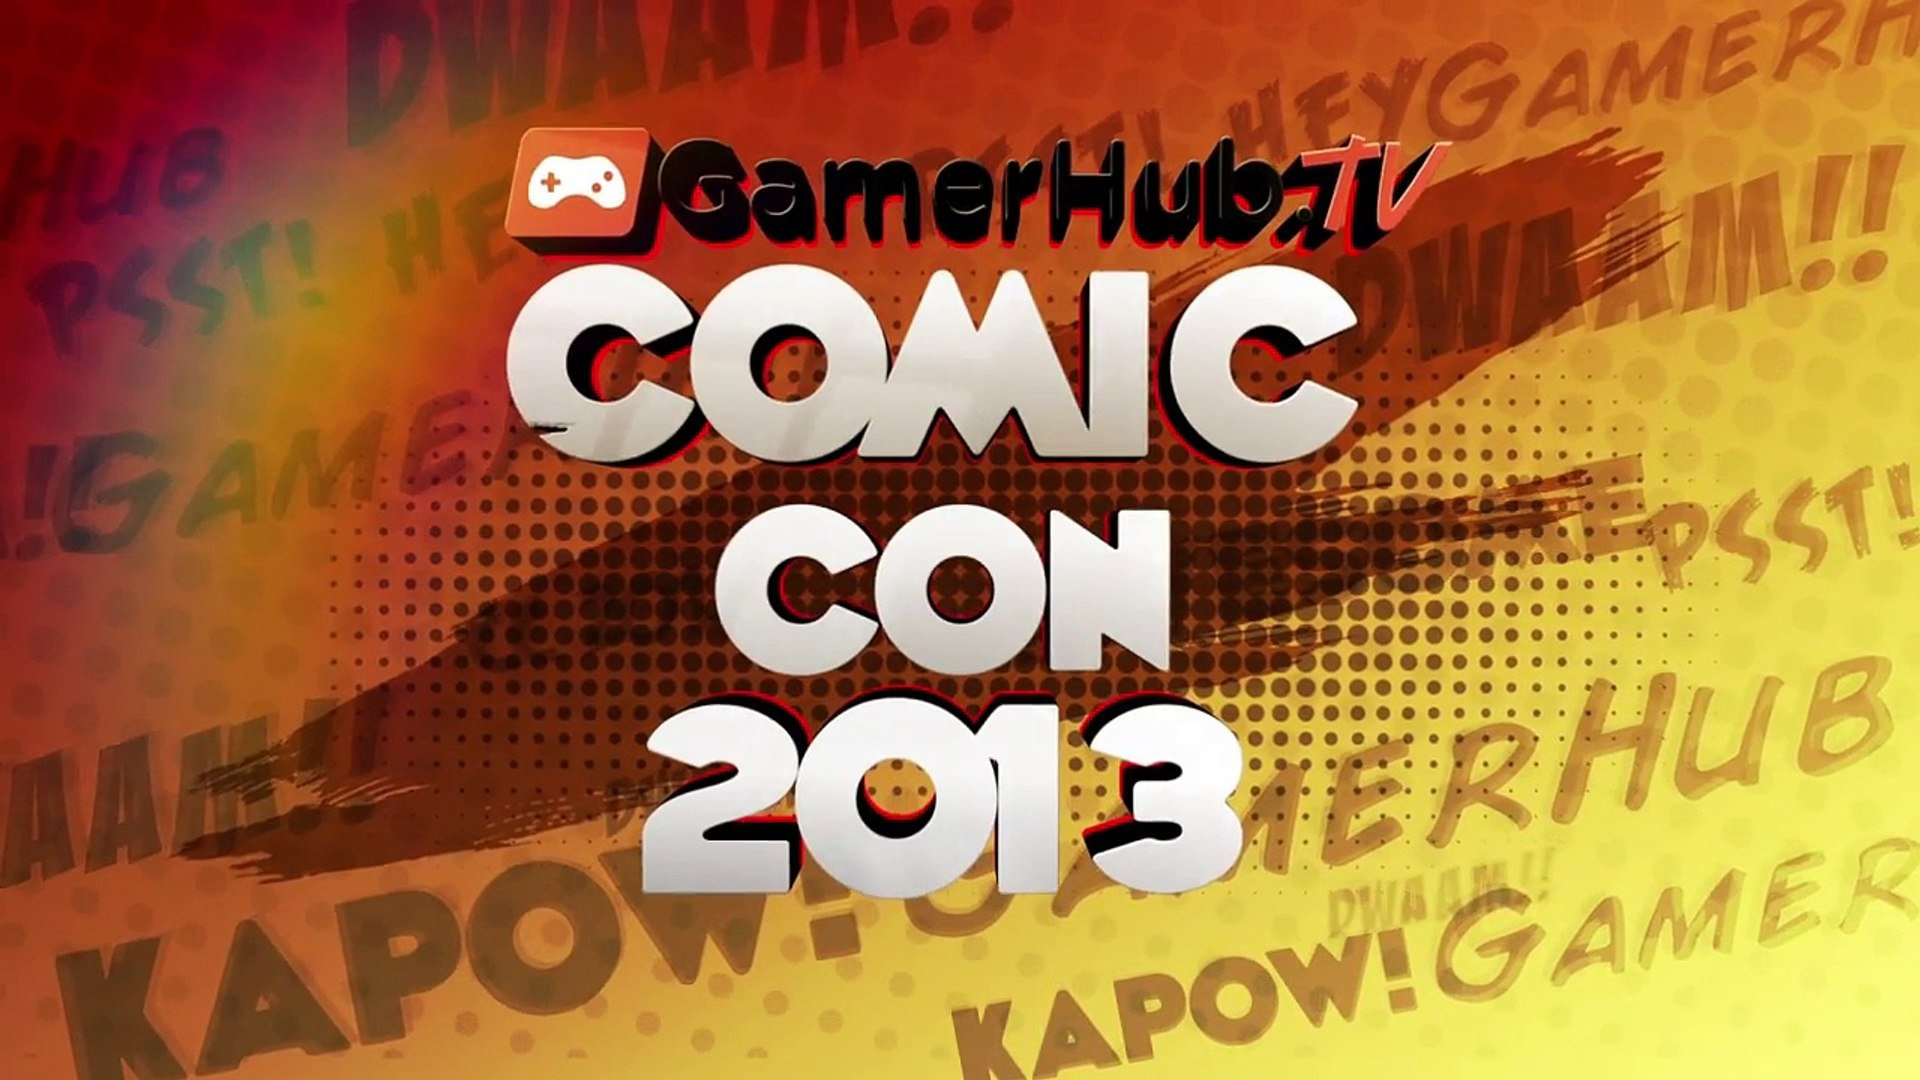 Workaholics Blake Anderson Finds The Funny At Comic Con - Gamerhubtv